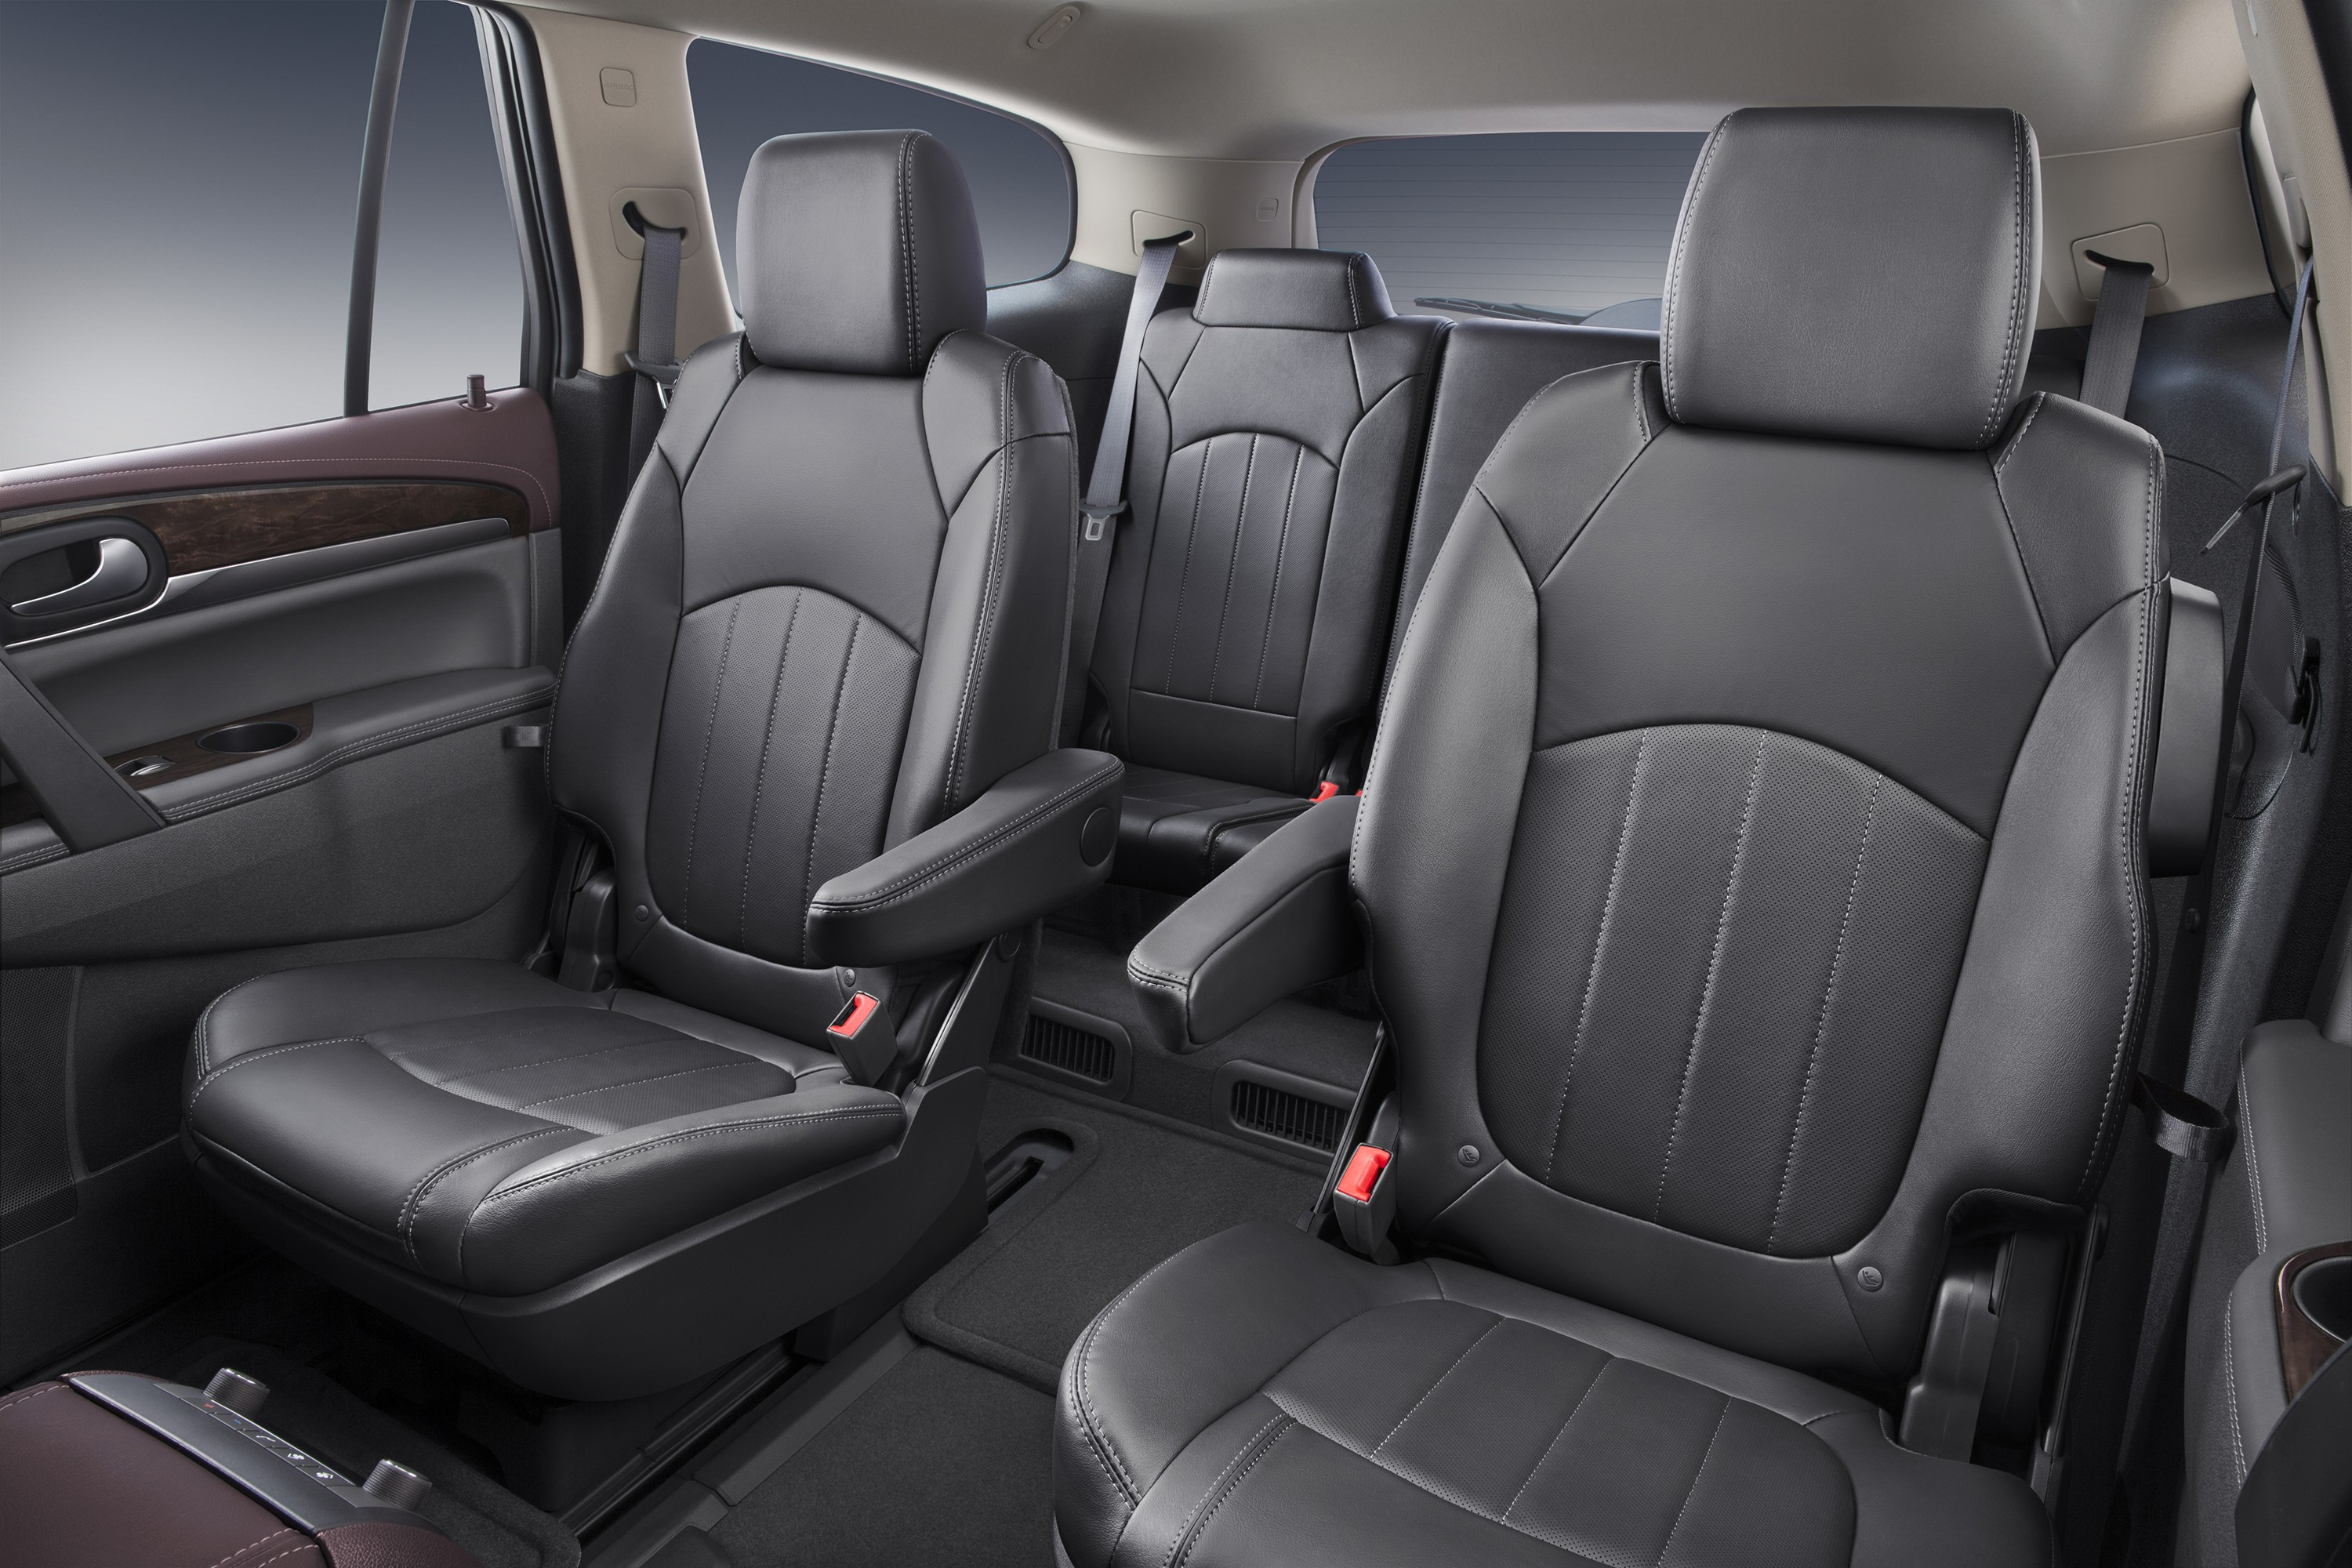 Jeep Dealership Columbus Ohio Mid Size Suv With Second Row Captain Chairs Autos Post | 2017 - 2018 ...